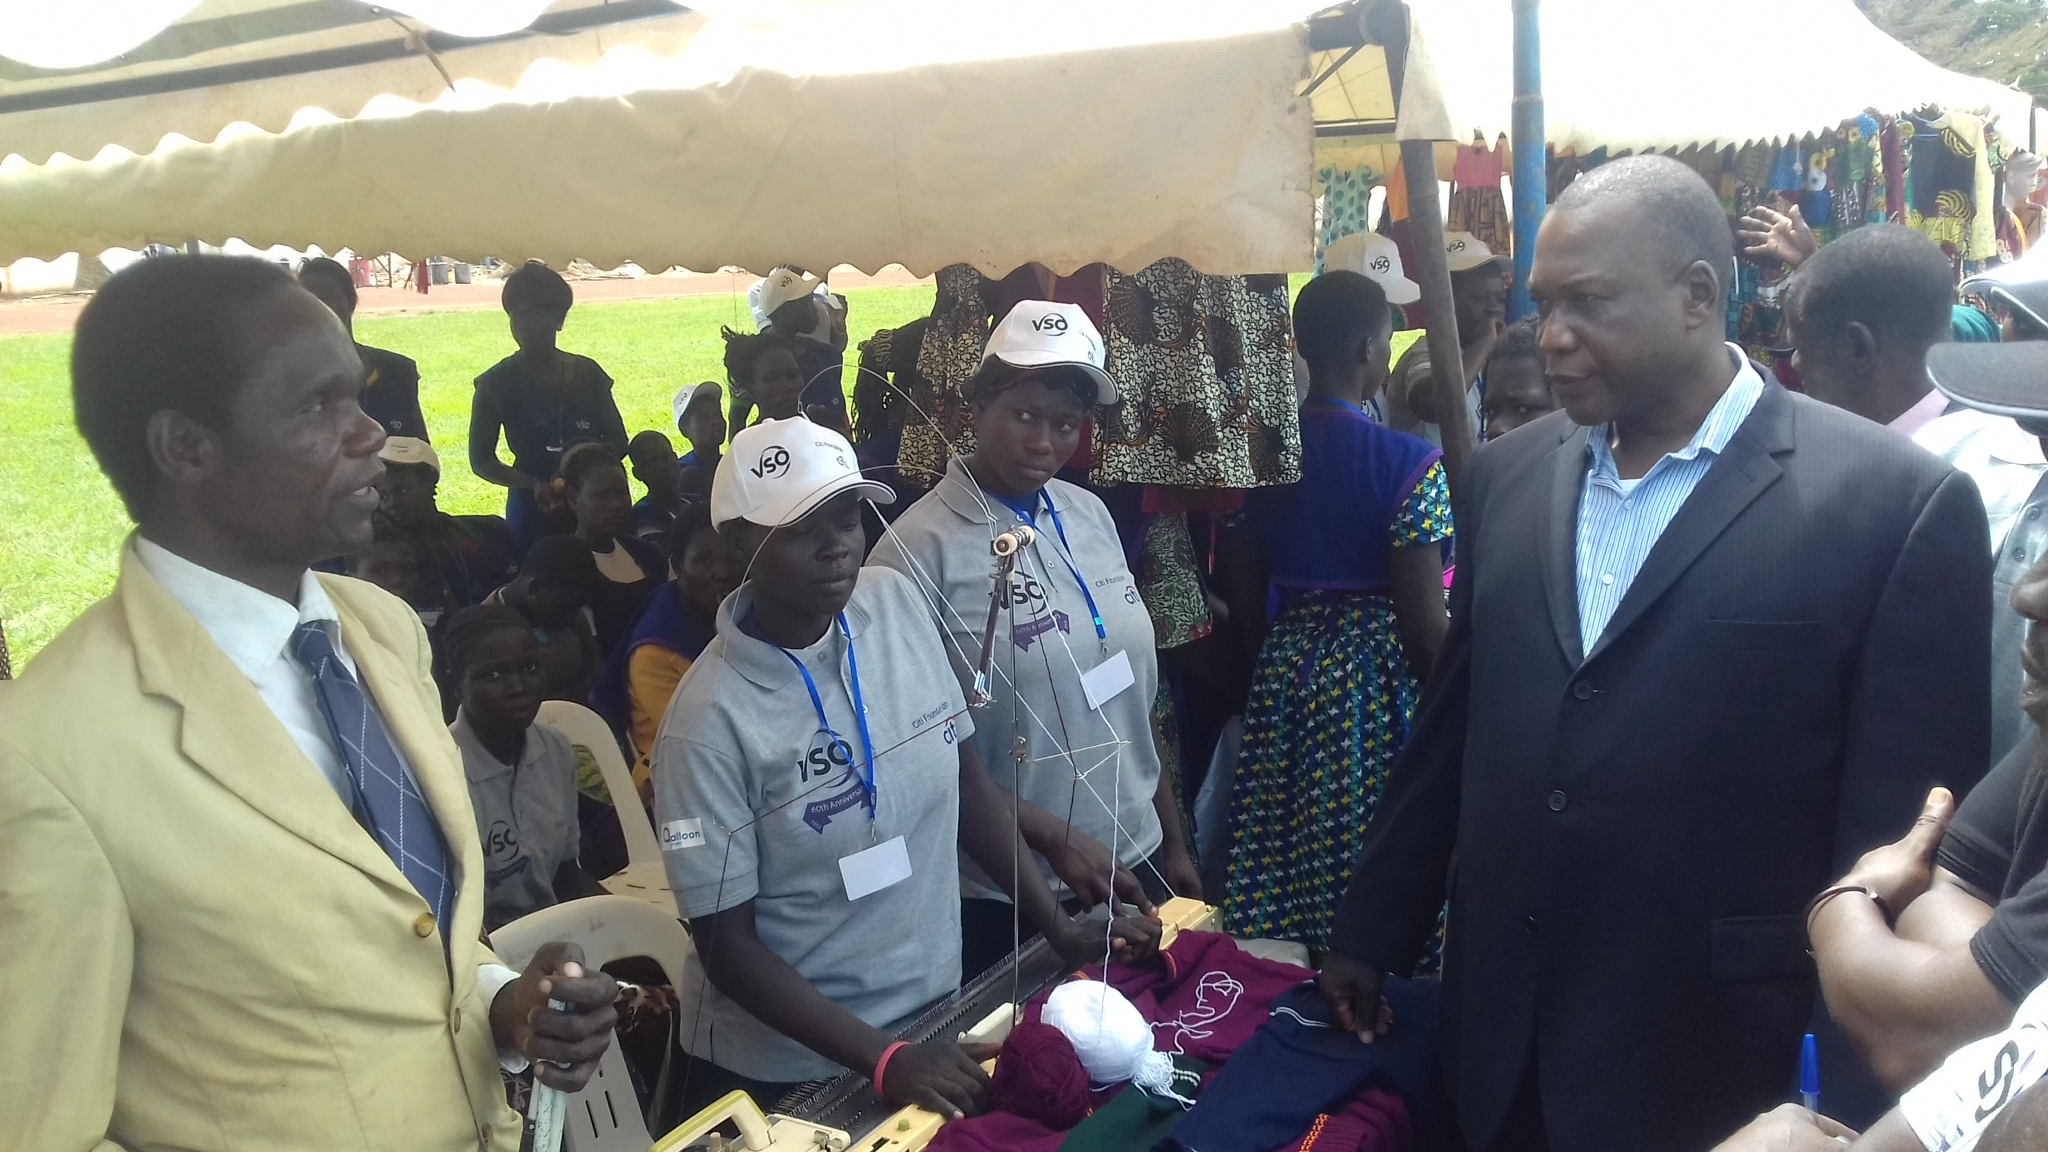 Rwot David Onen Acana II inspect stalls of youth exhibition of project outputs at Pece war memorial stadium in Gulu town (PHOTO BY DavidOkema)